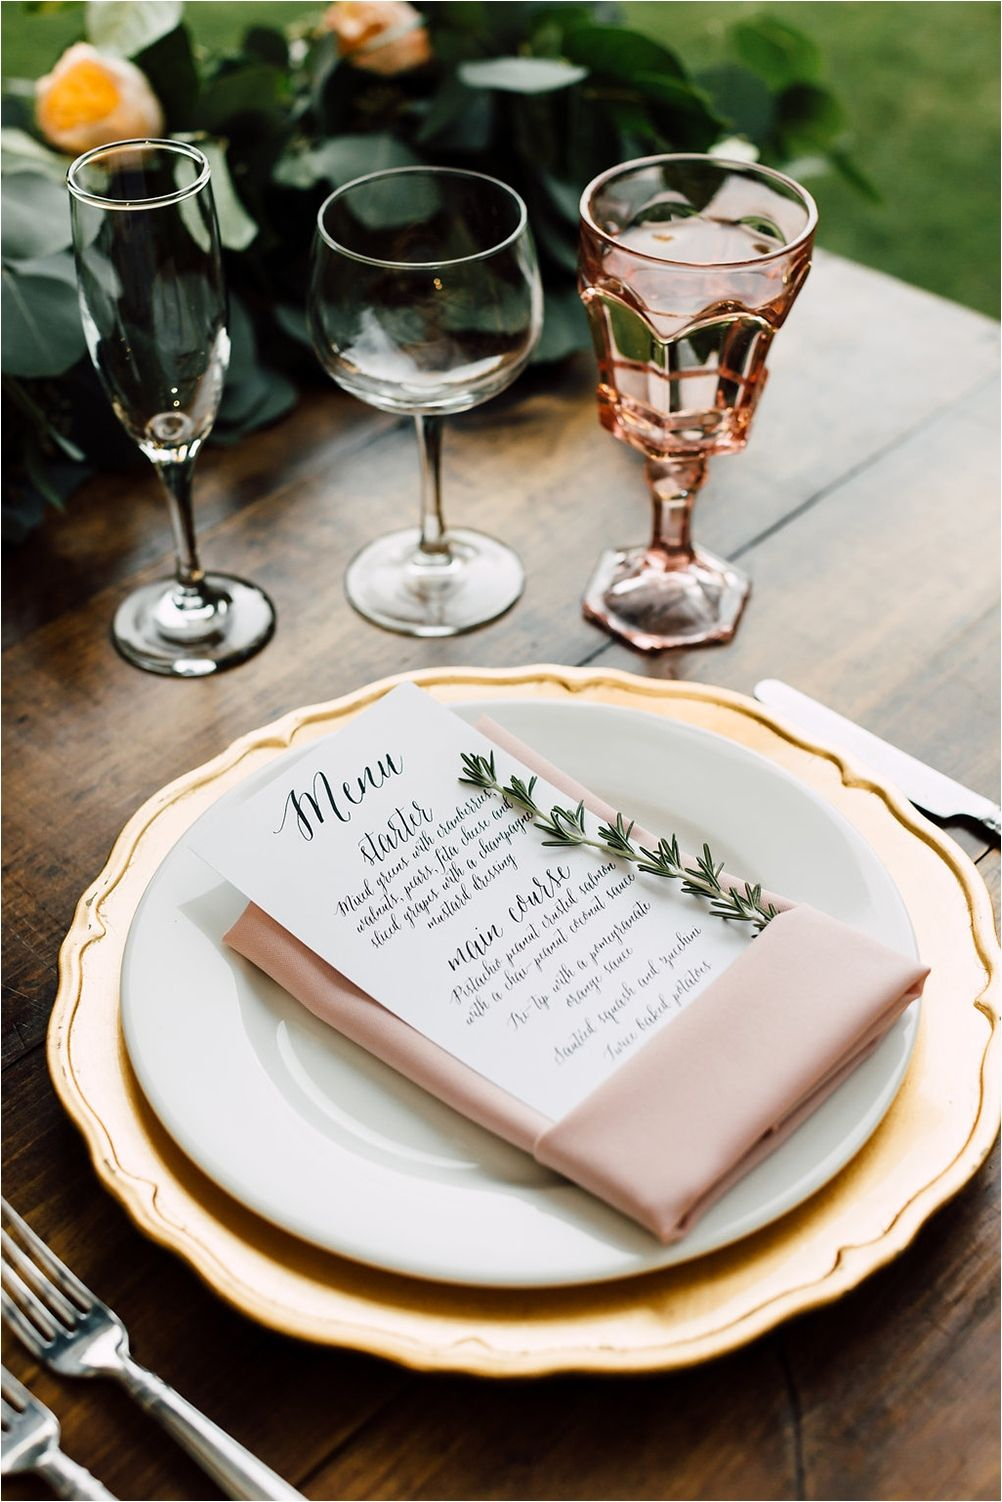 70+ Elegant Wedding Table Settings Ideas 2017